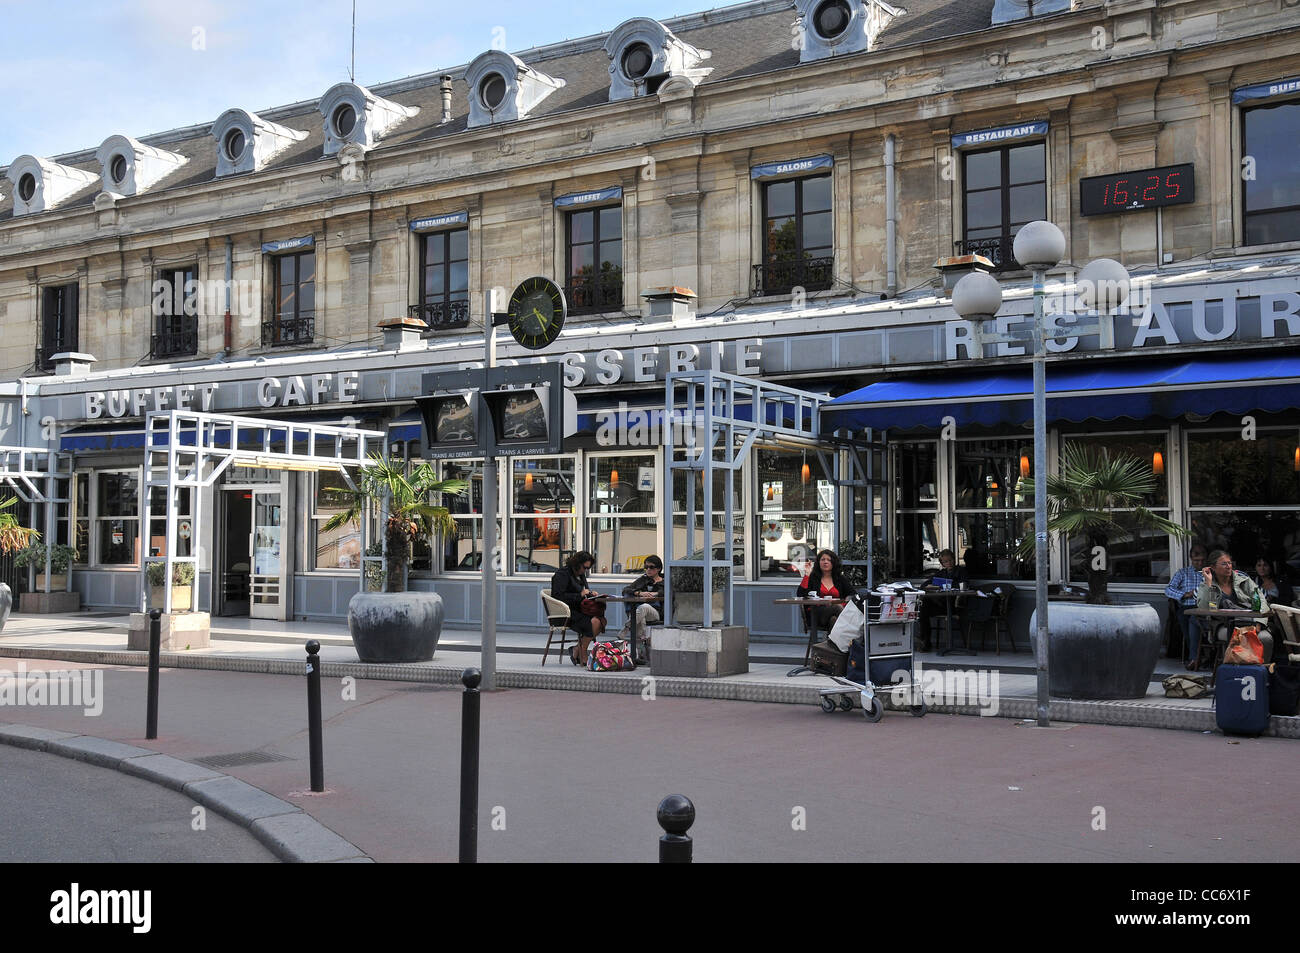 Austerlitz railway station Paris France - Stock Image